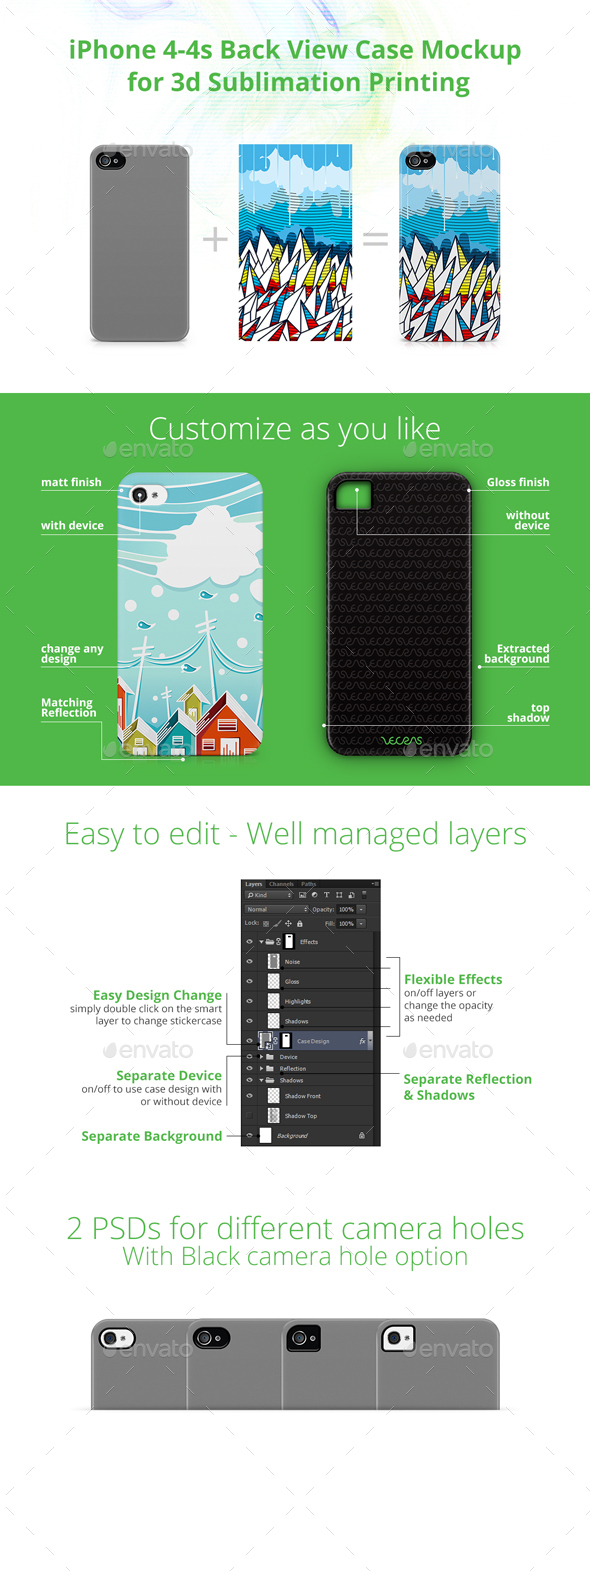 iPhone 4-4s Case Design Mockup for 3d Sublimation Printing - Back View - Mobile Displays